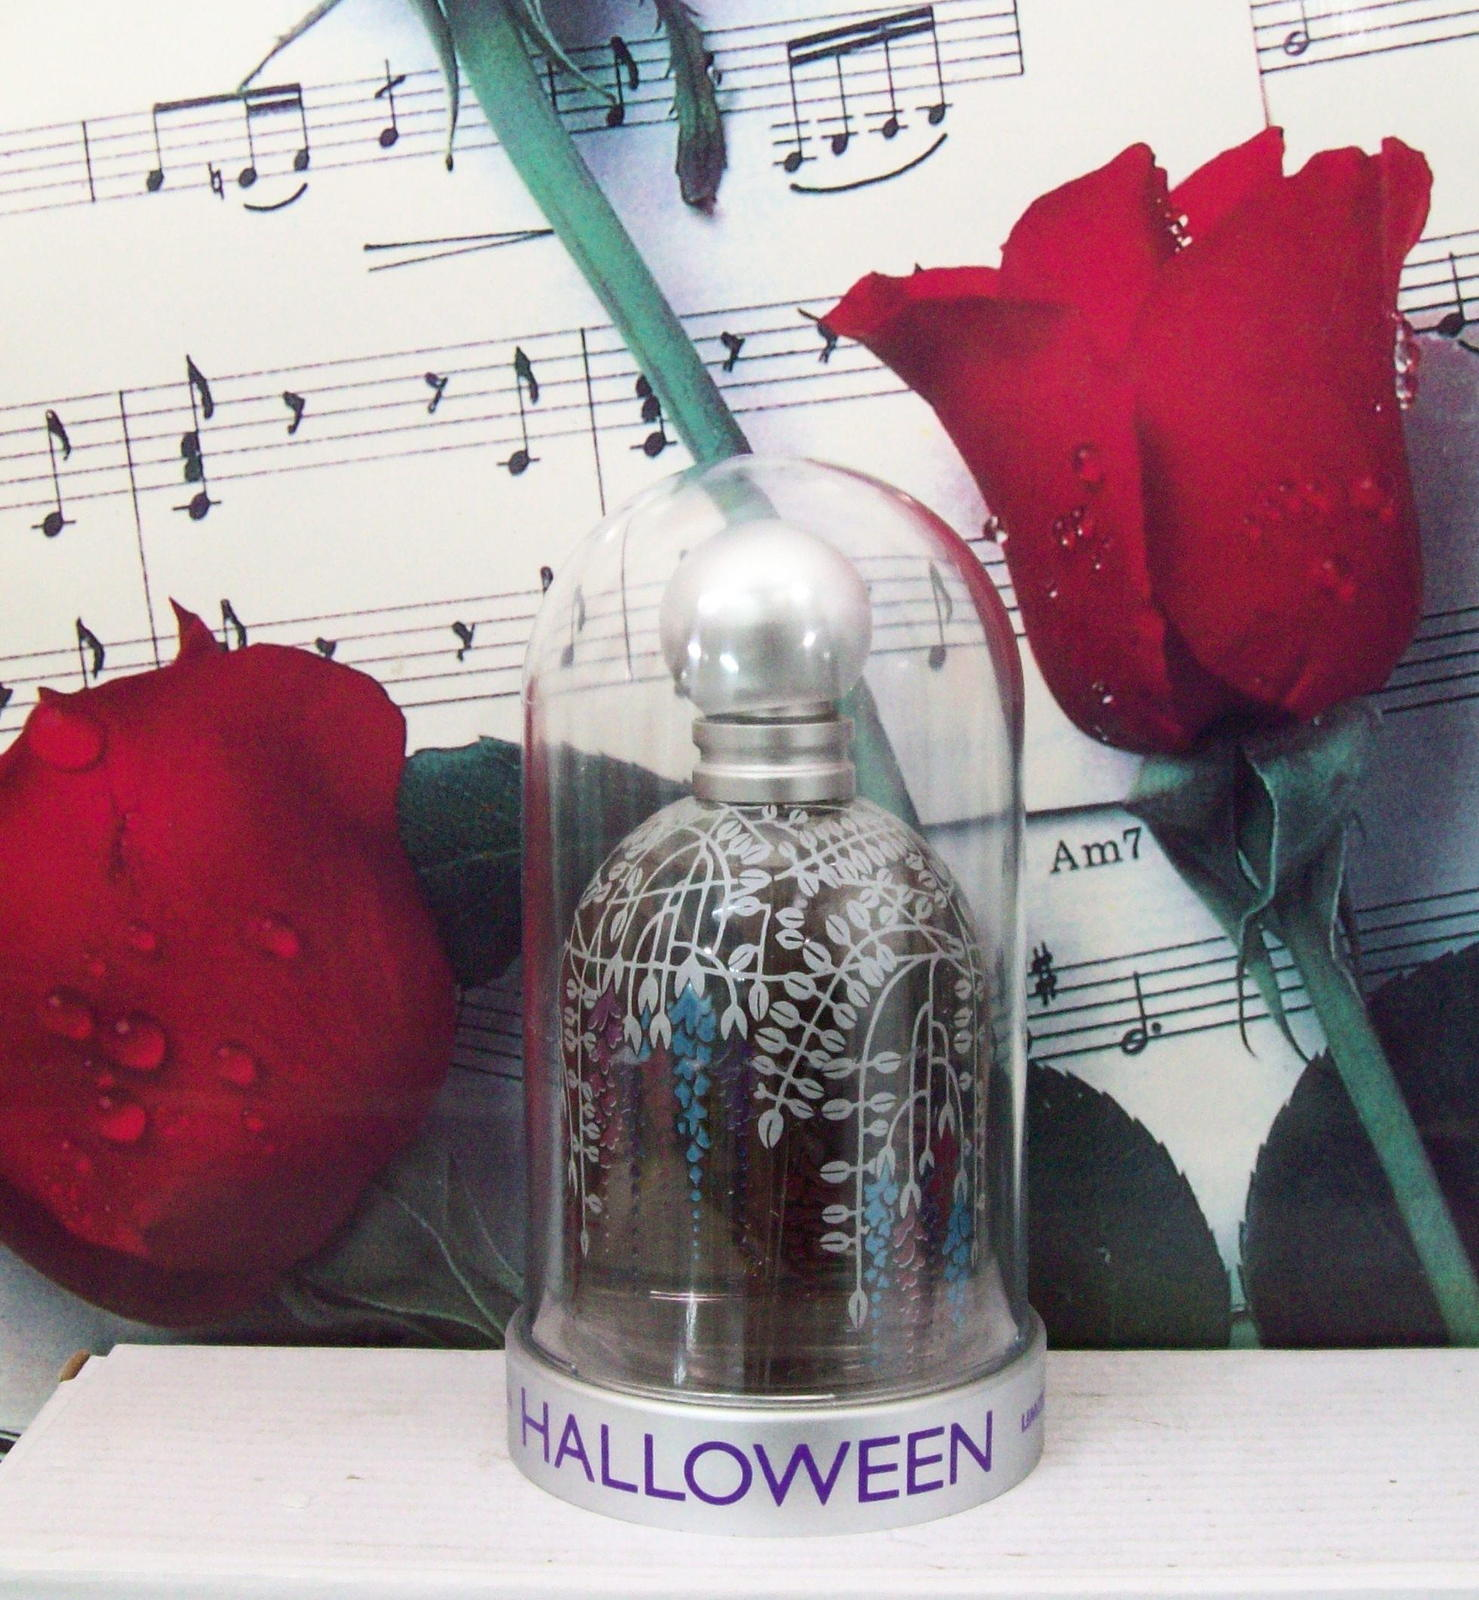 Primary image for J. Del Pozo Halloween Limited Edition EDT Spray 3.4 FL. OZ.